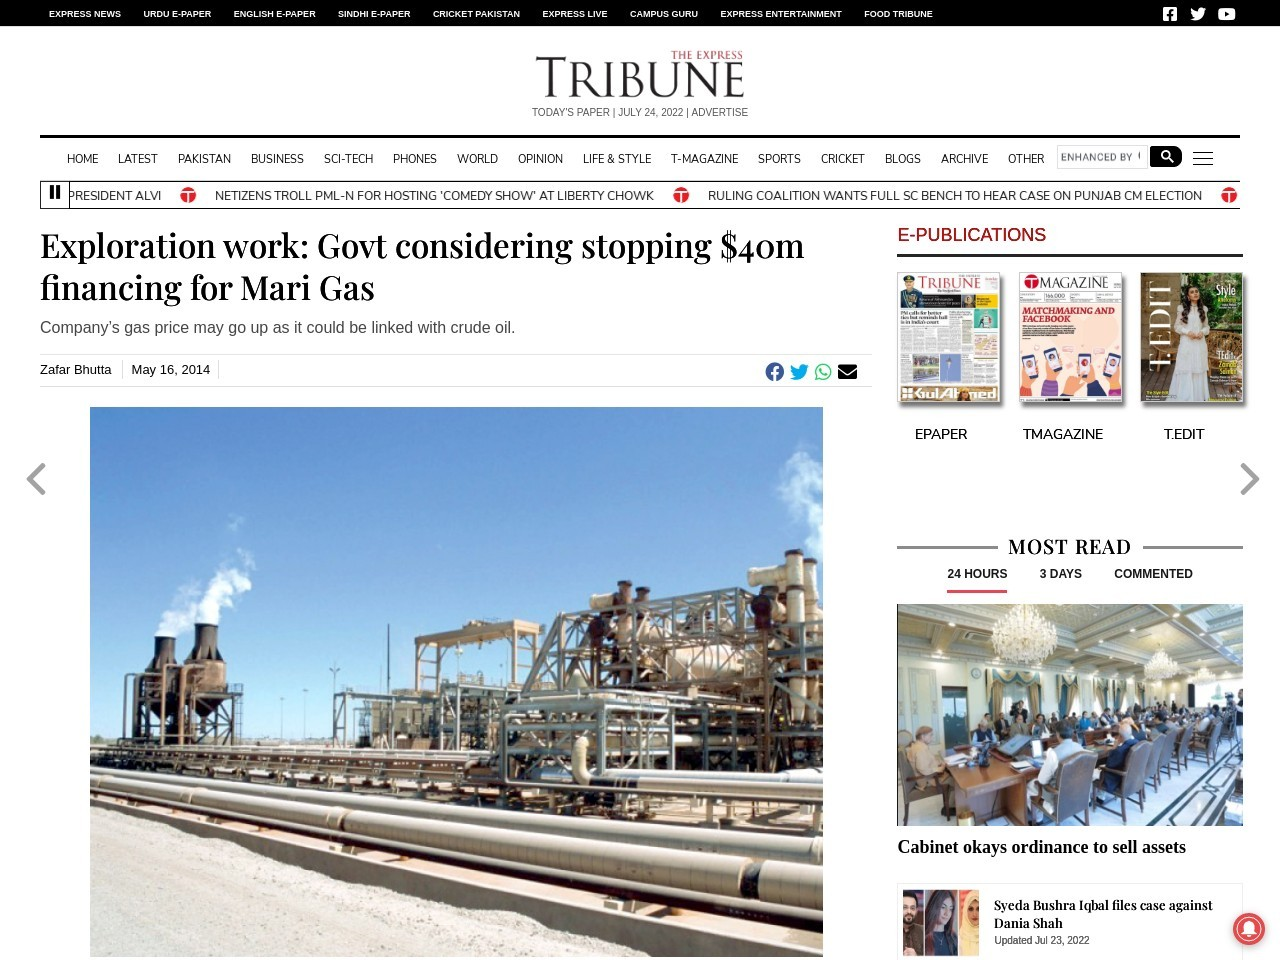 Govt considering stopping $40m financing for Mari Gas